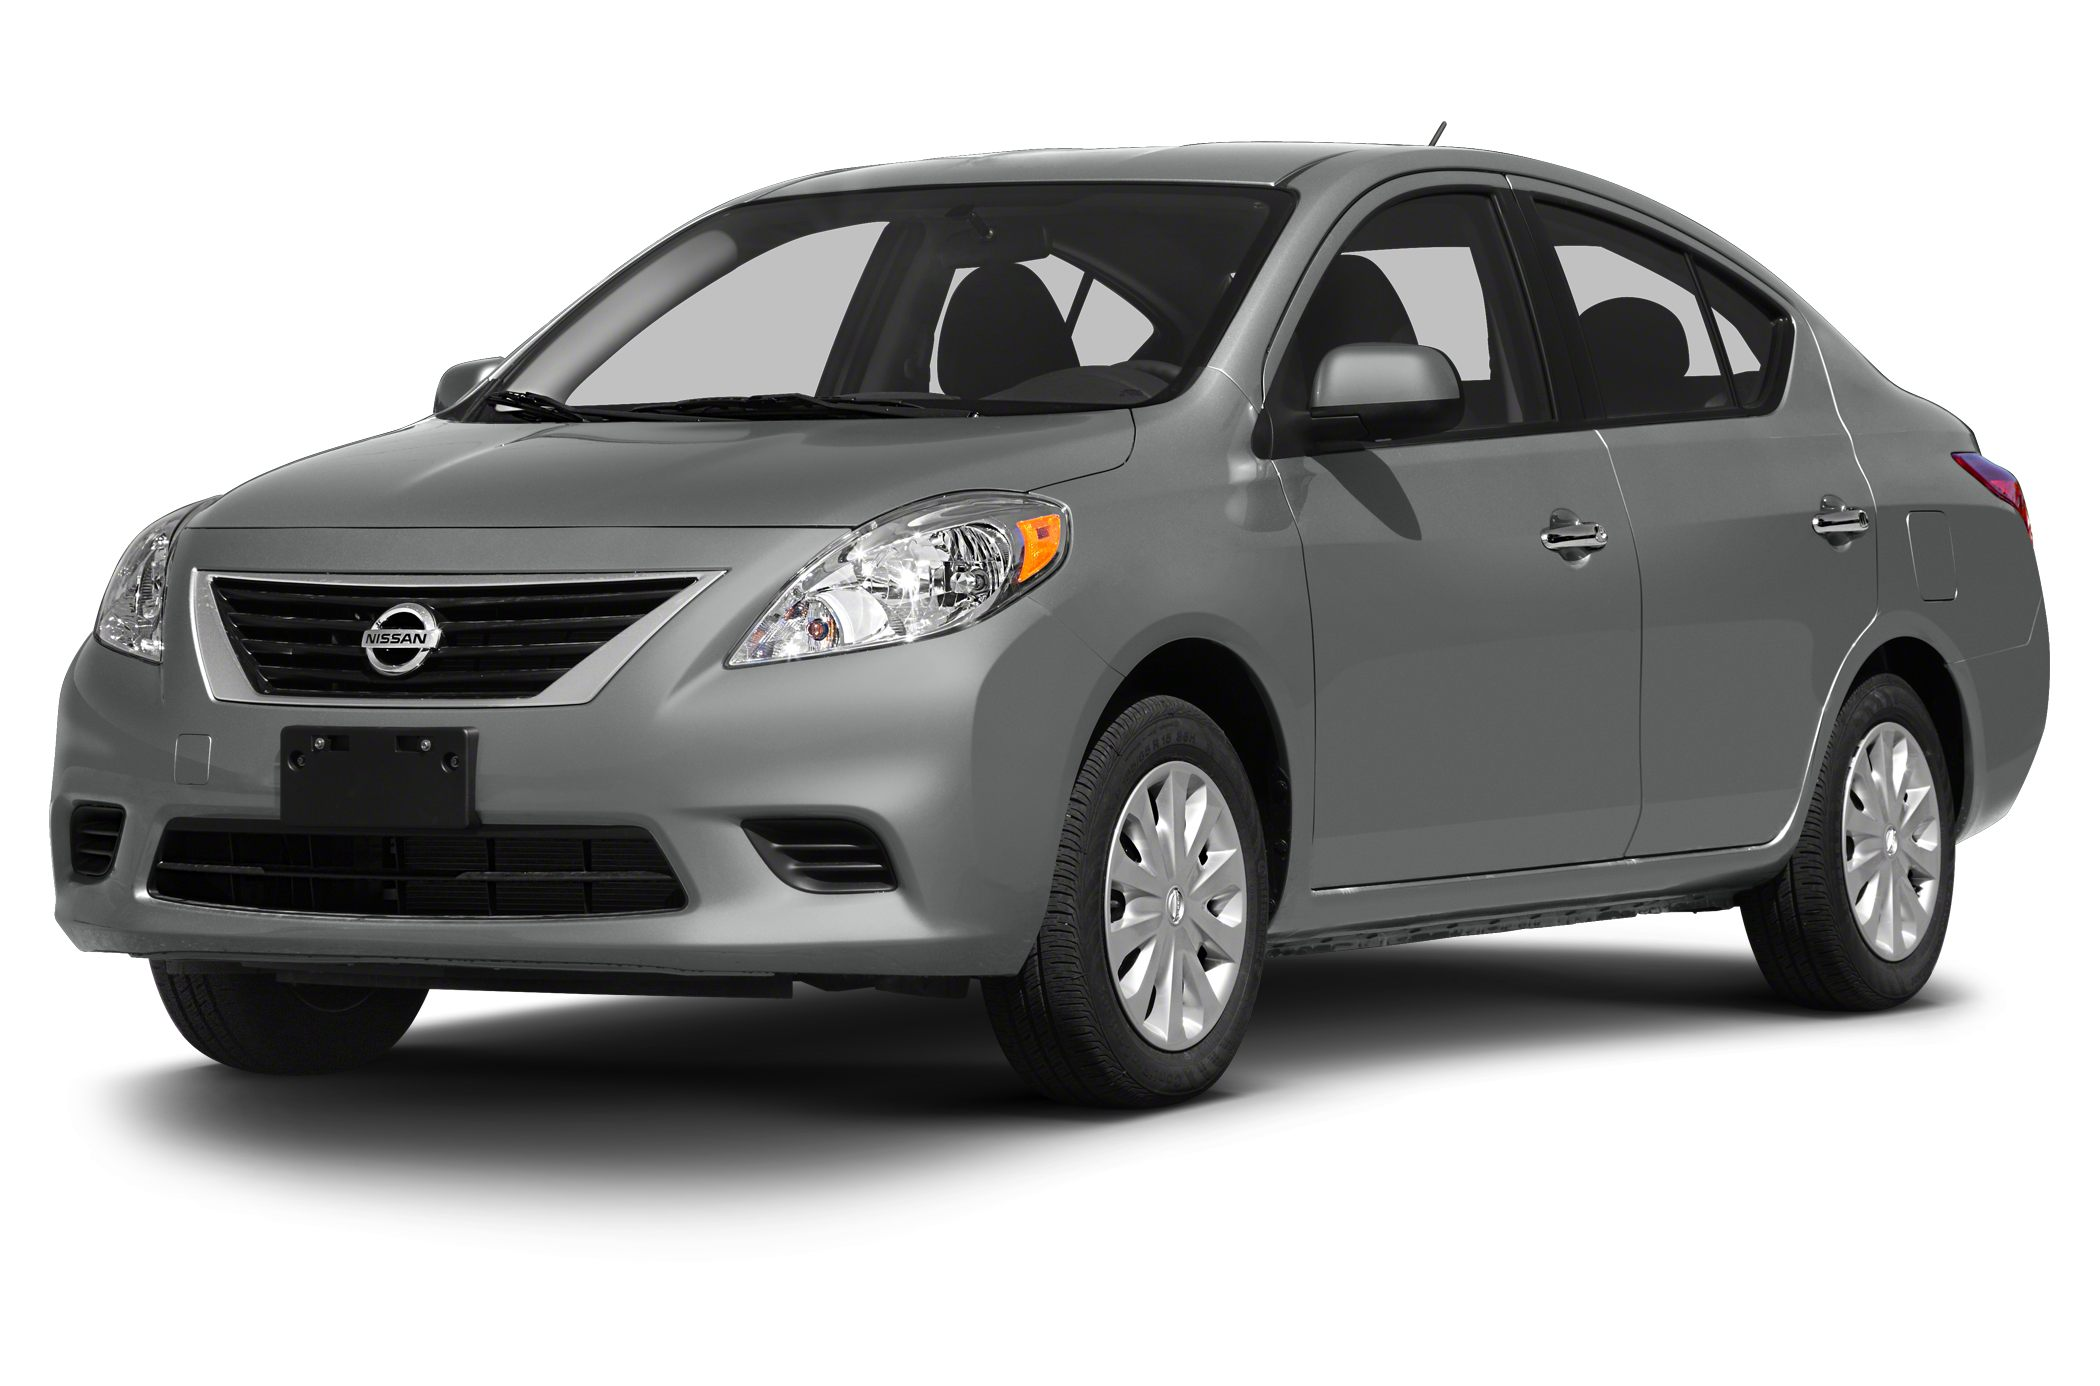 2013 Nissan Versa 1.6 SV Sedan for sale in Erie for $12,993 with 18,161 miles.